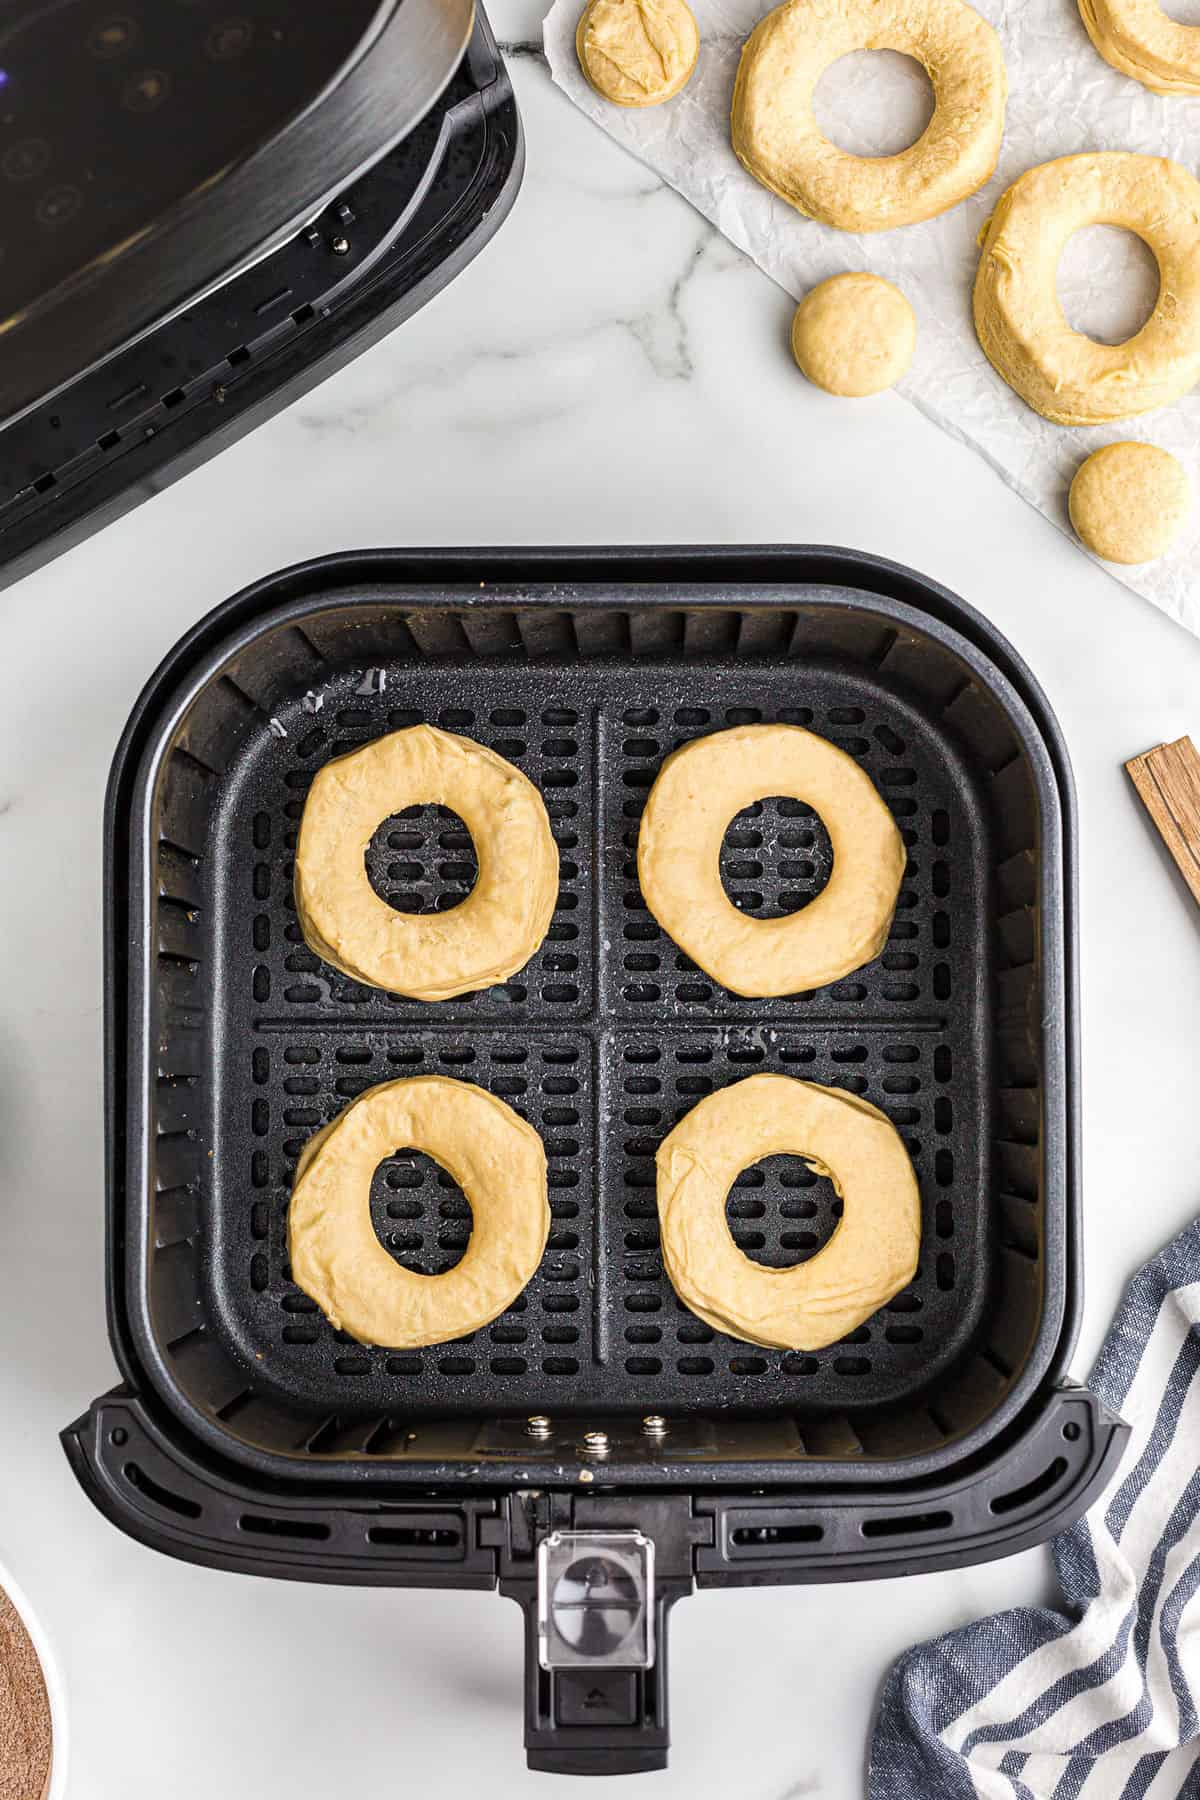 place biscuits in air fryer basket